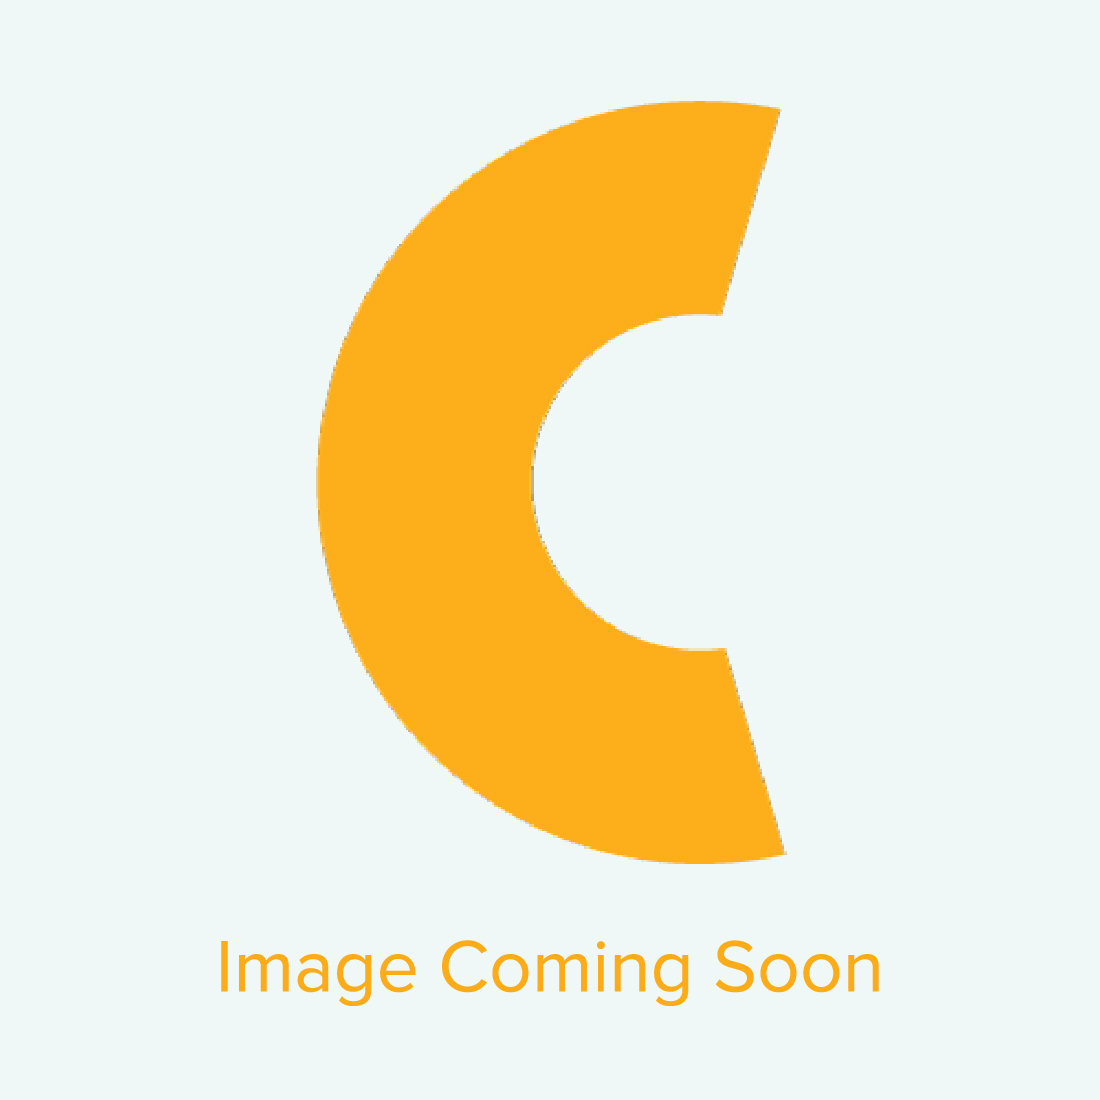 Brother ScanNCut DX Heat Transfer Paper Kit